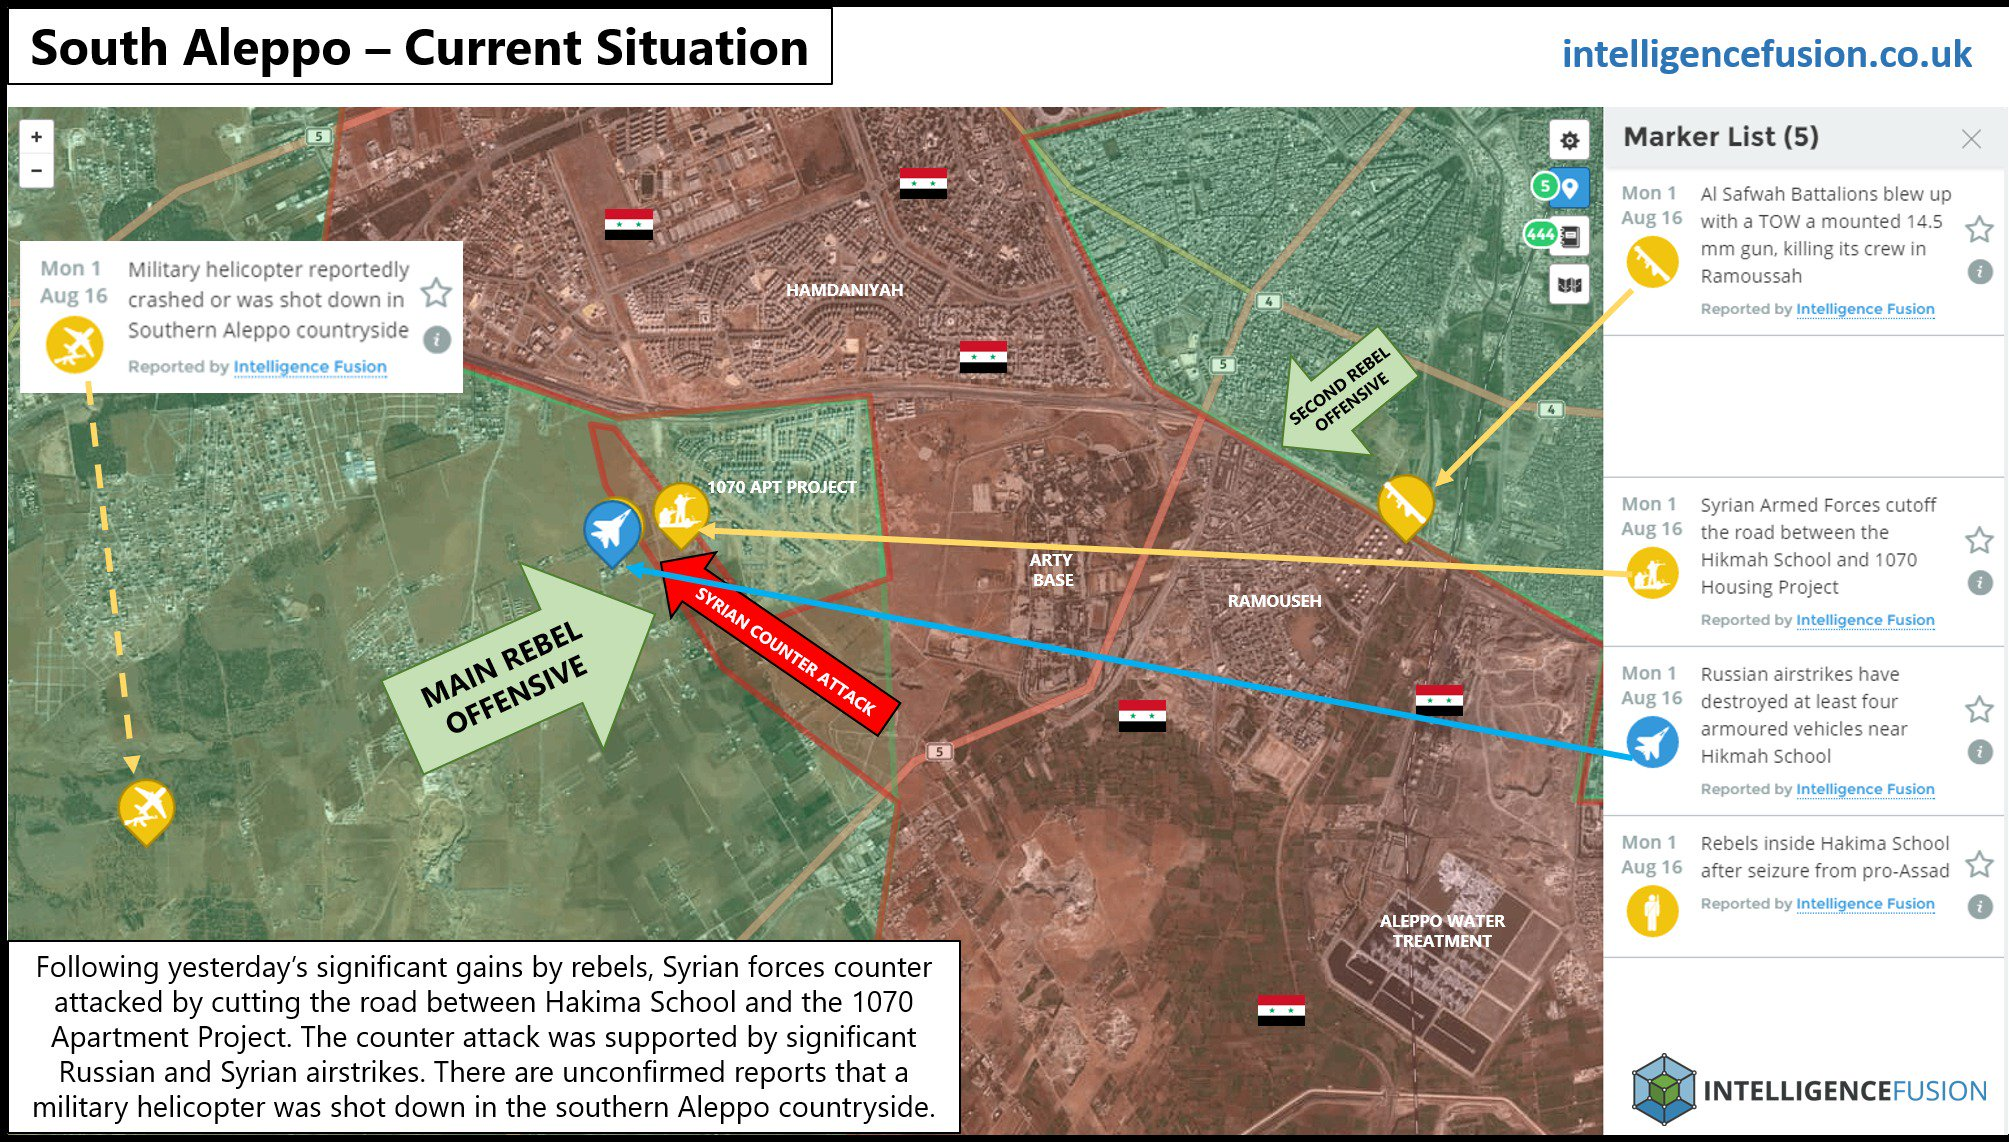 Russian Aerospace Forces Pulverize Area of Downed MI-8, Syrian Army Counter-Attacks in South Aleppo